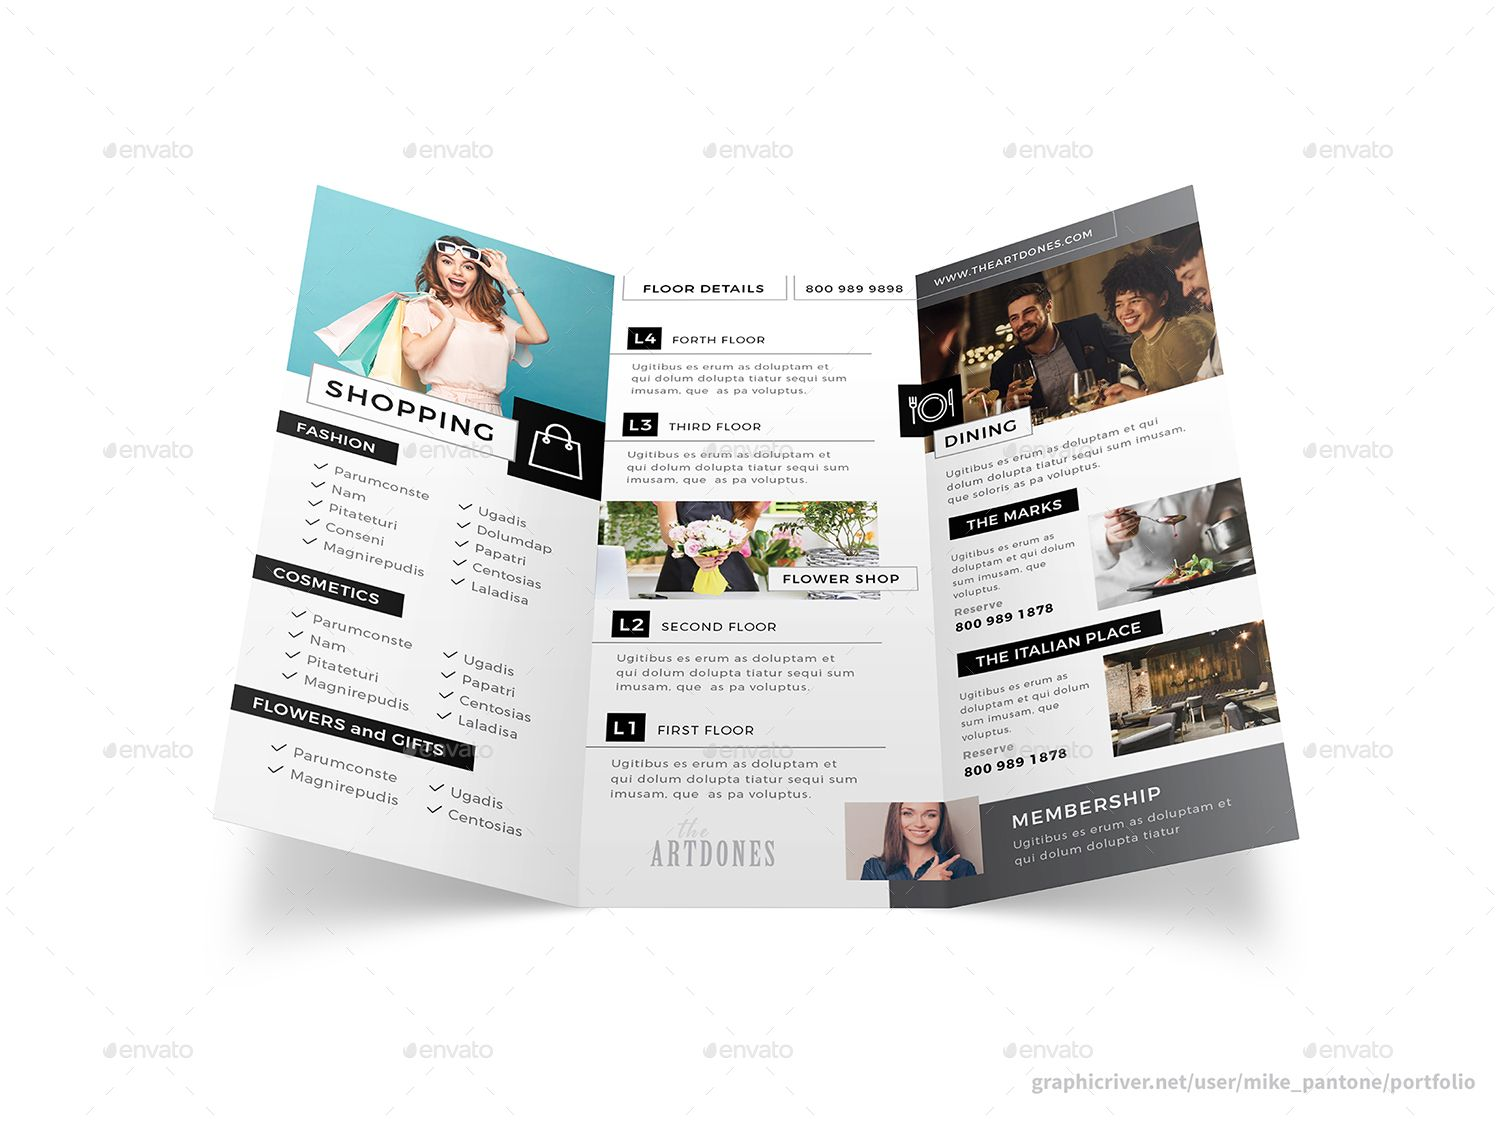 Shopping Mall Trifold Brochure Trifold brochure